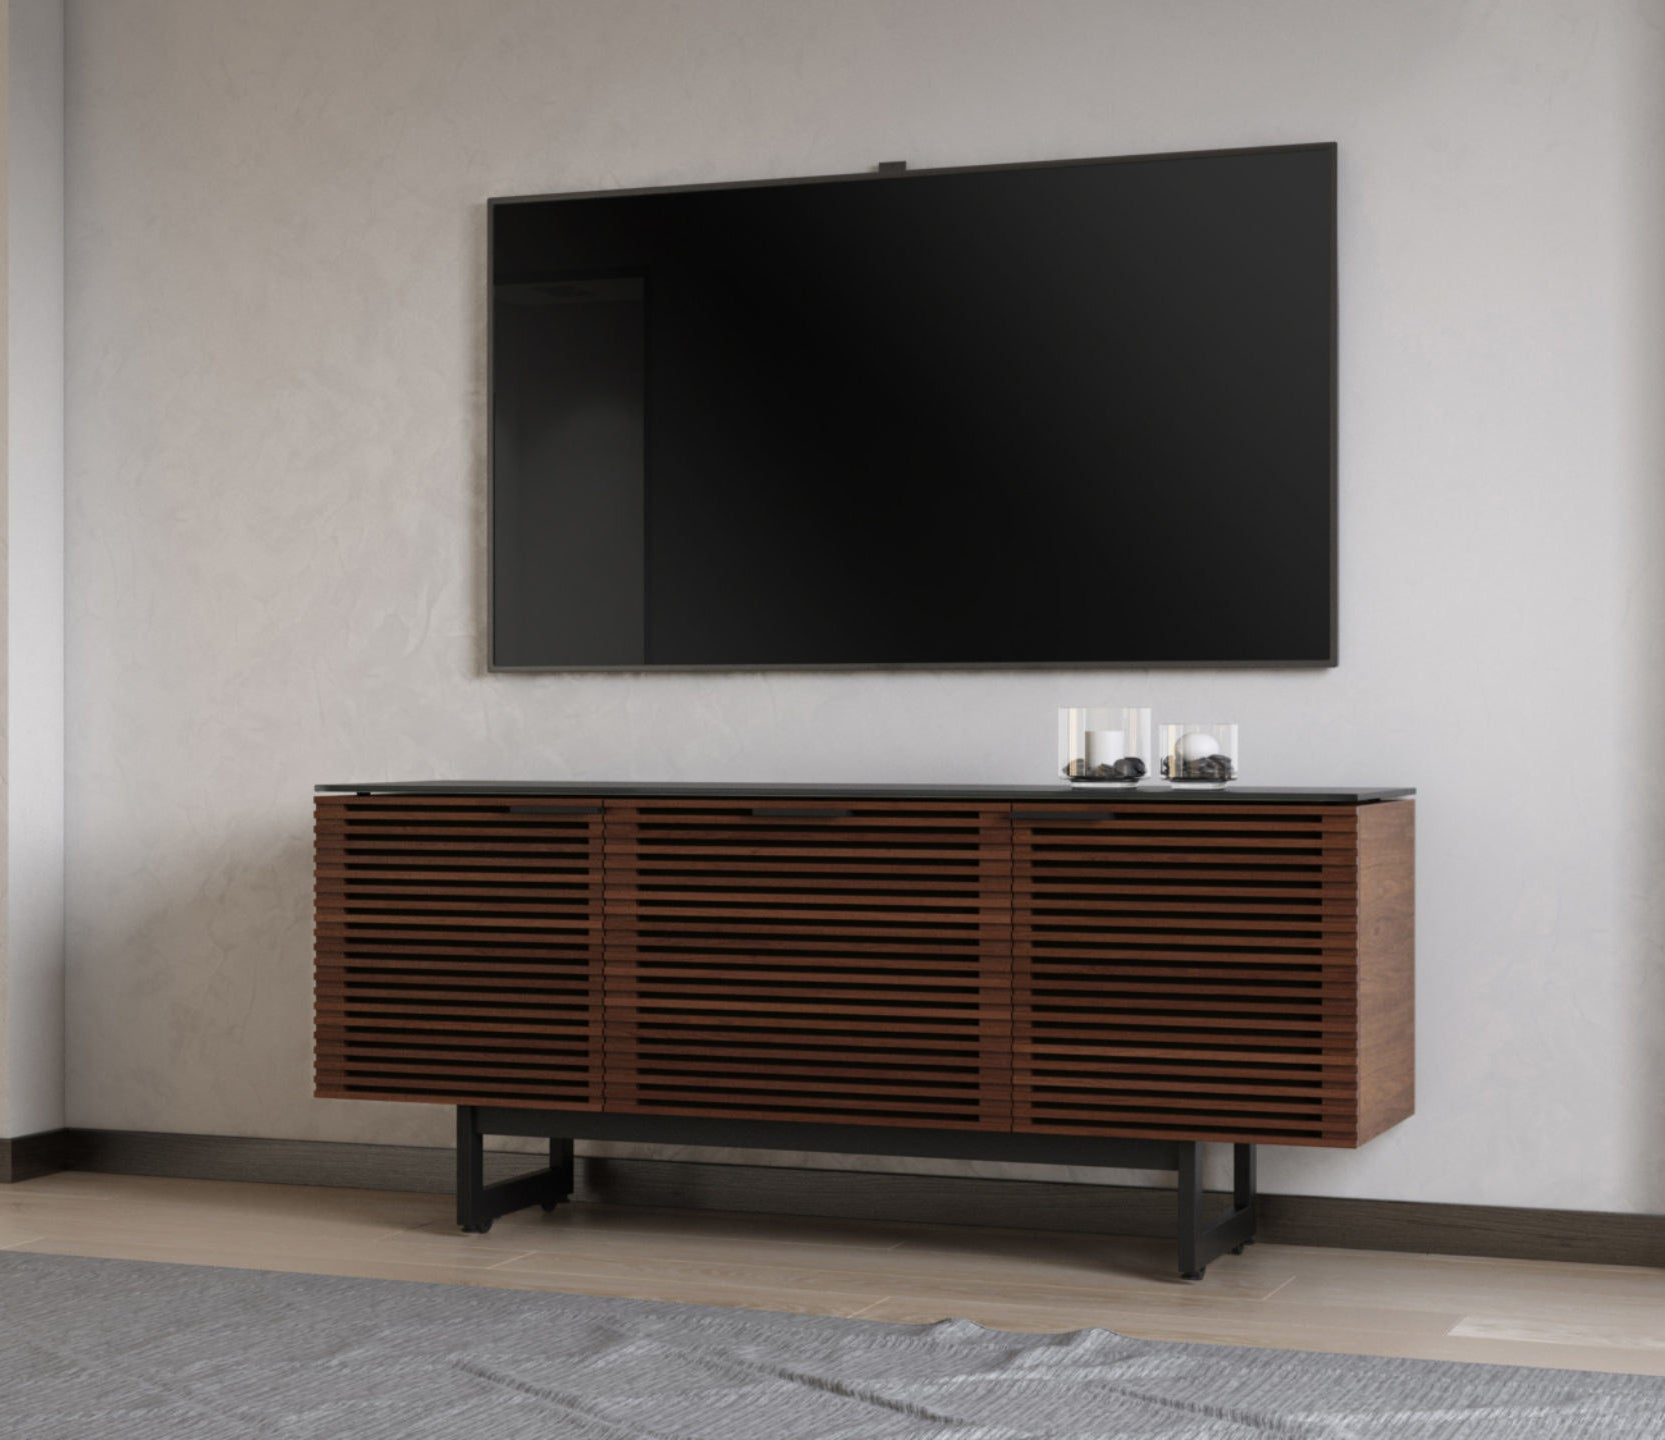 The triple-wide cabinet with wood slotted front and black metal legs under a TV in a living room.